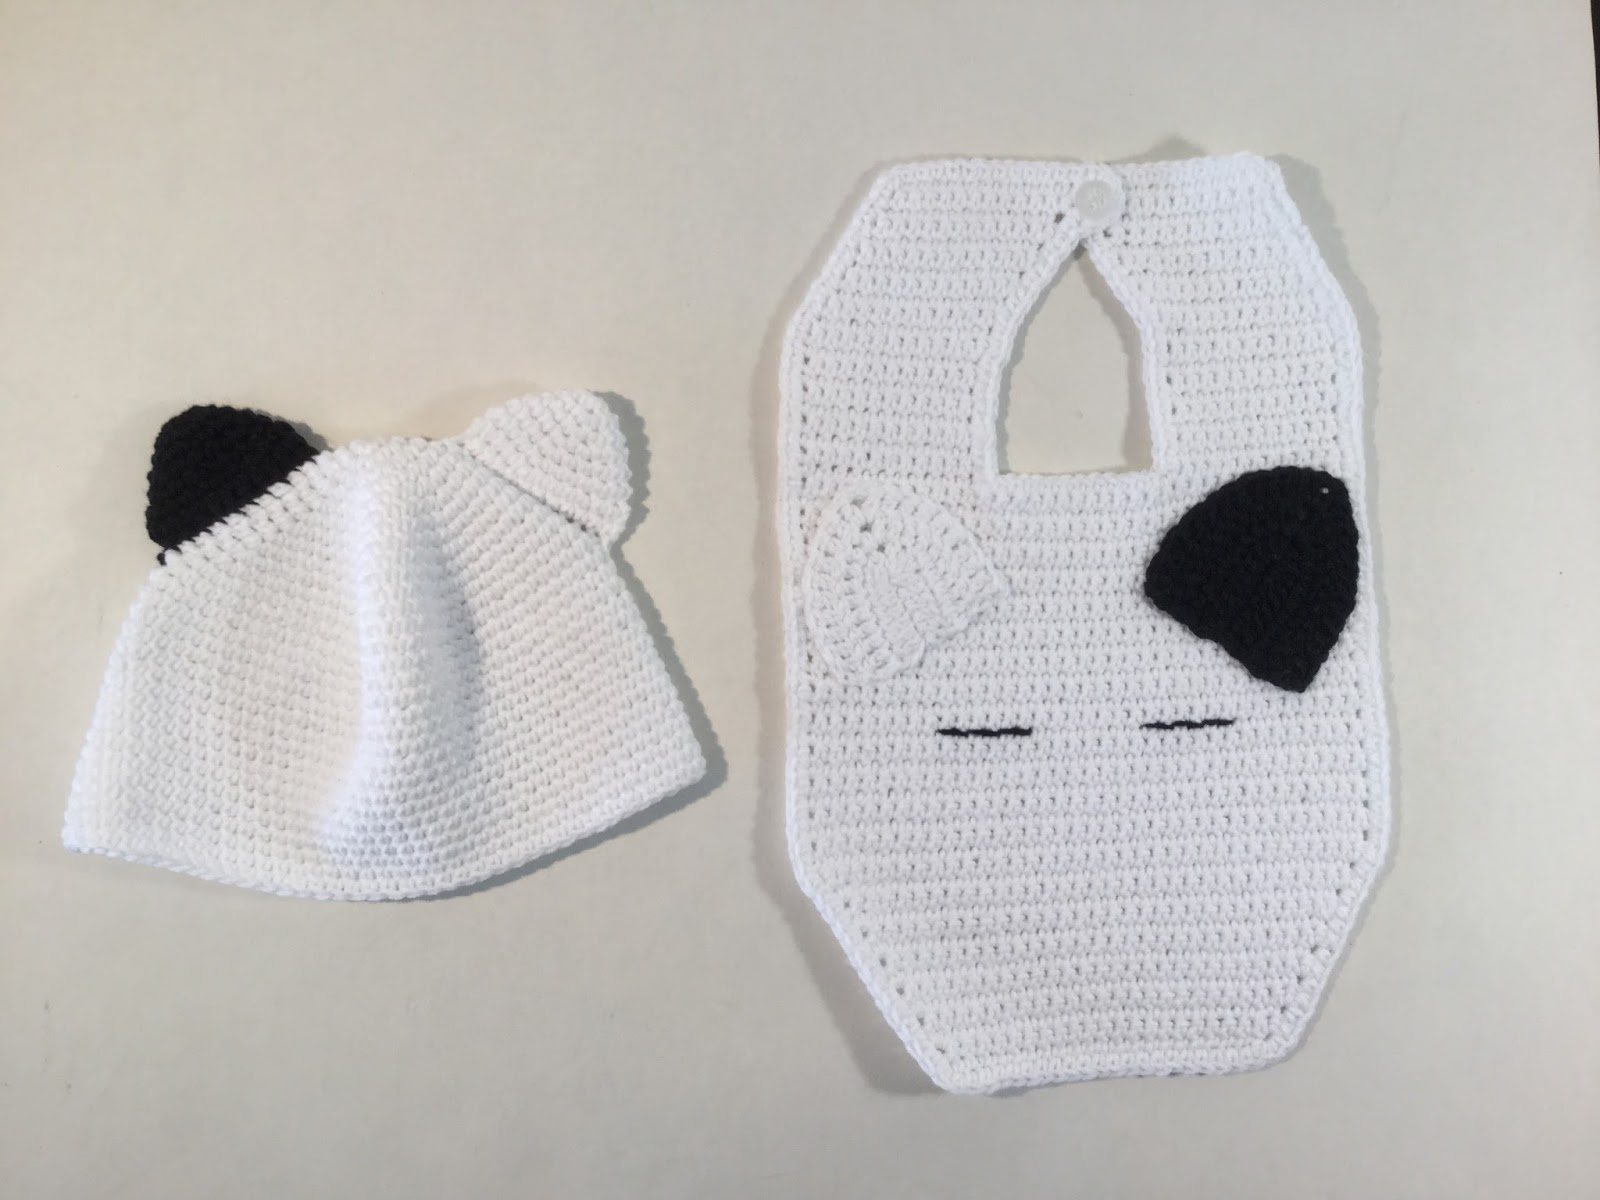 El Gnomo De Ganchillo: Gorro y Babero bebé/ Baby hat and bib